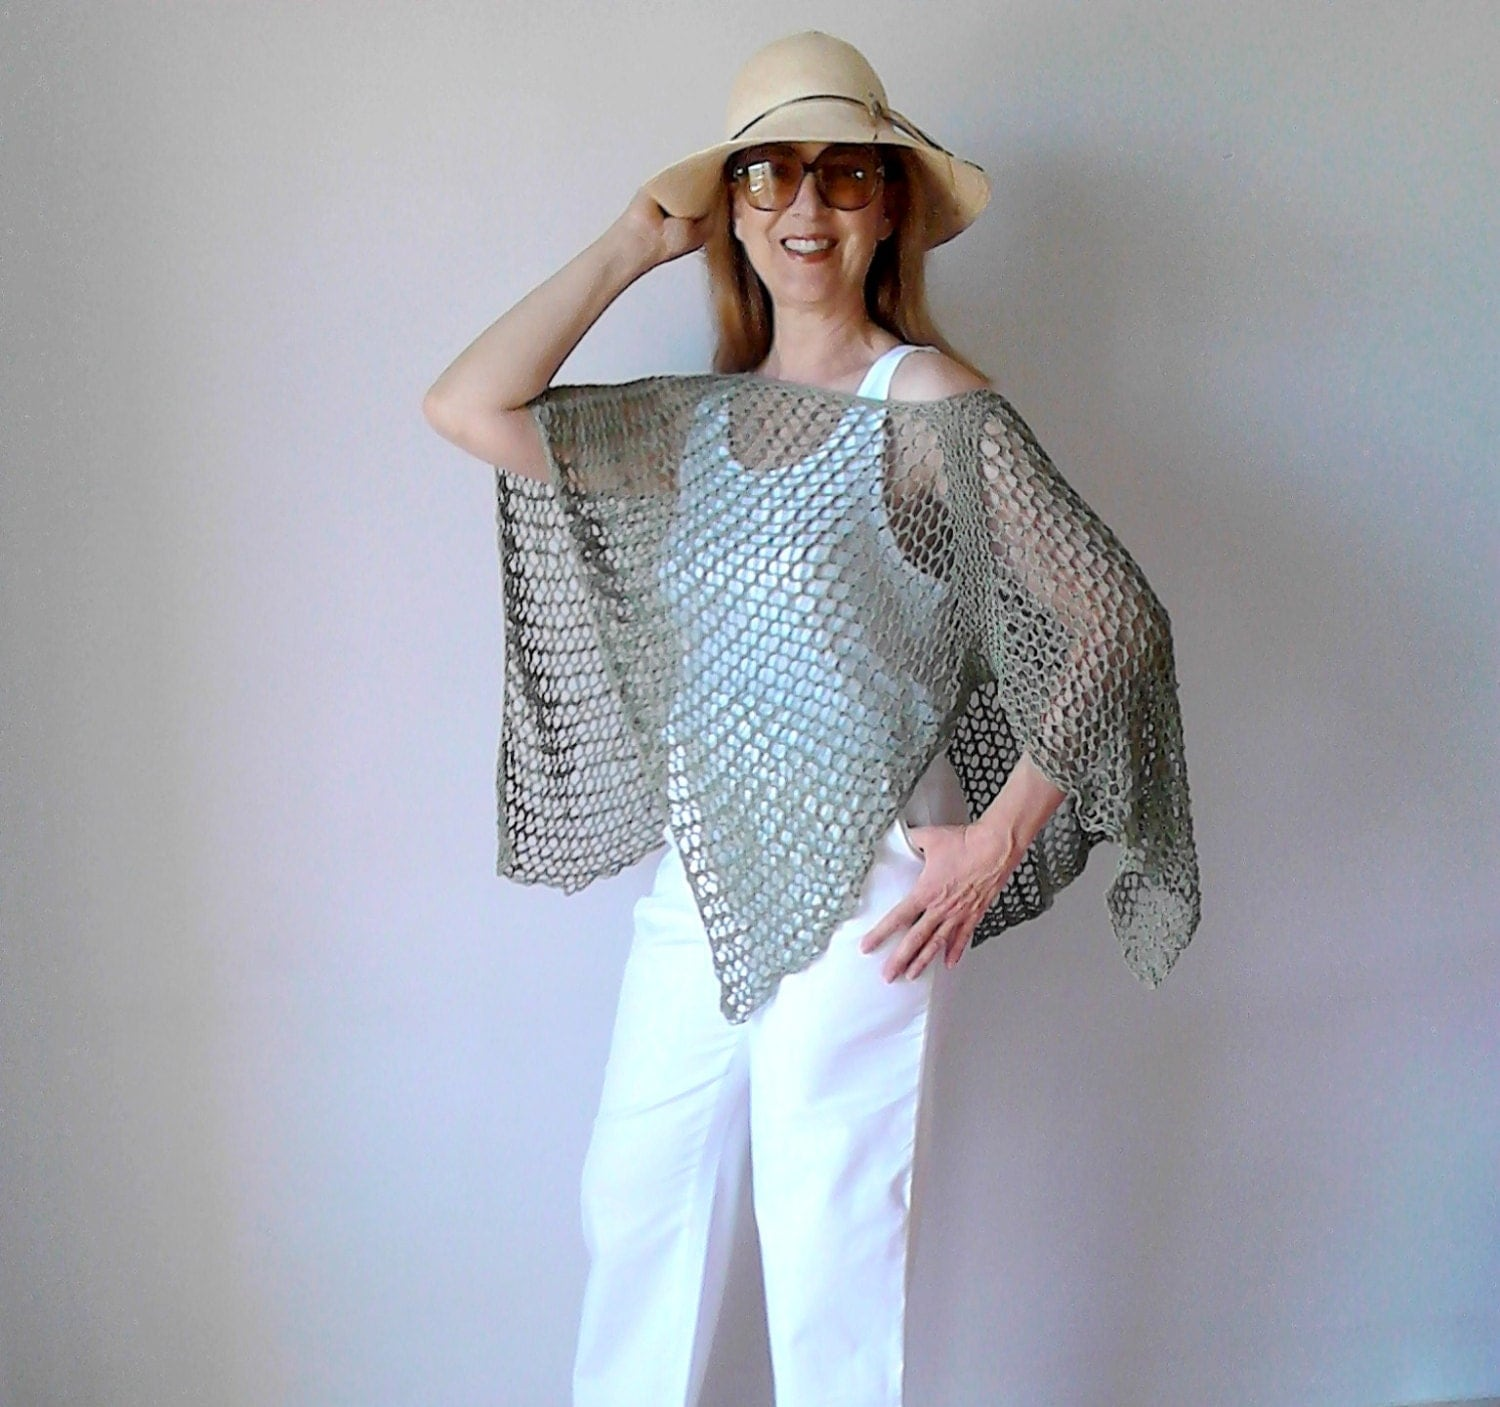 Knitting Pattern For Summer Poncho : Crochet poncho summer poncho beach cover up boho chic by PlexisArt